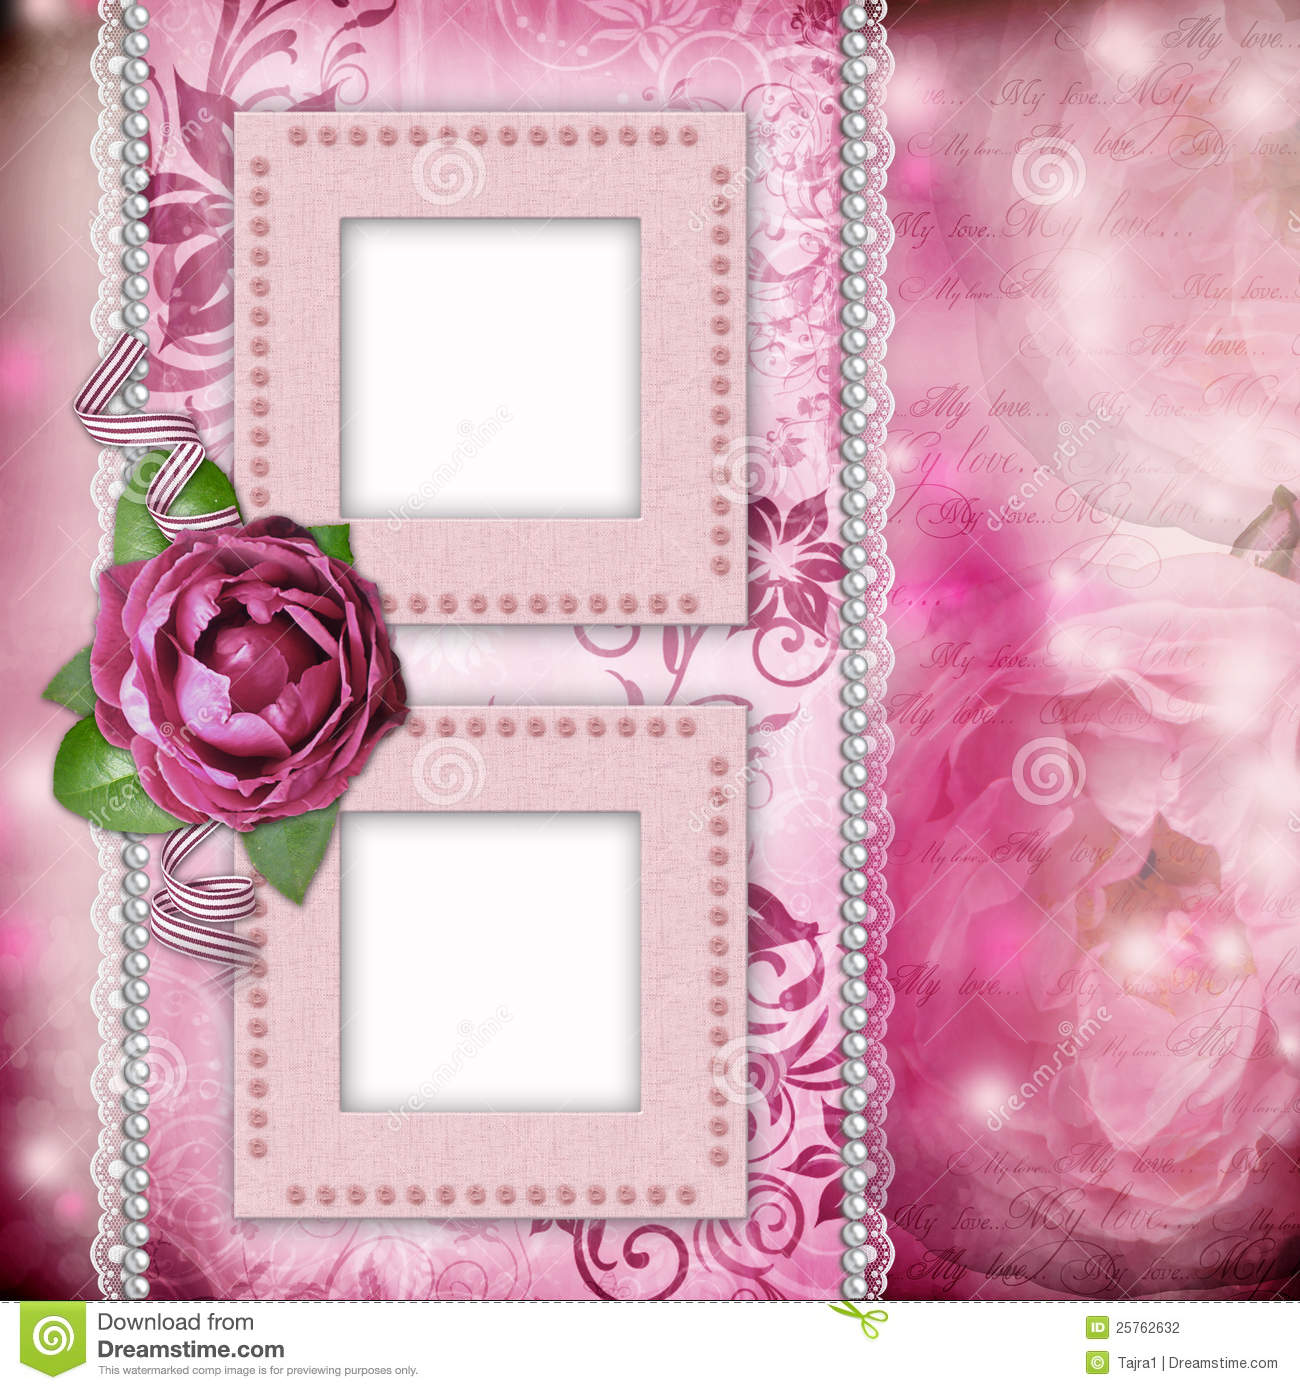 Romantic Background With Frames Rose Lace Stock